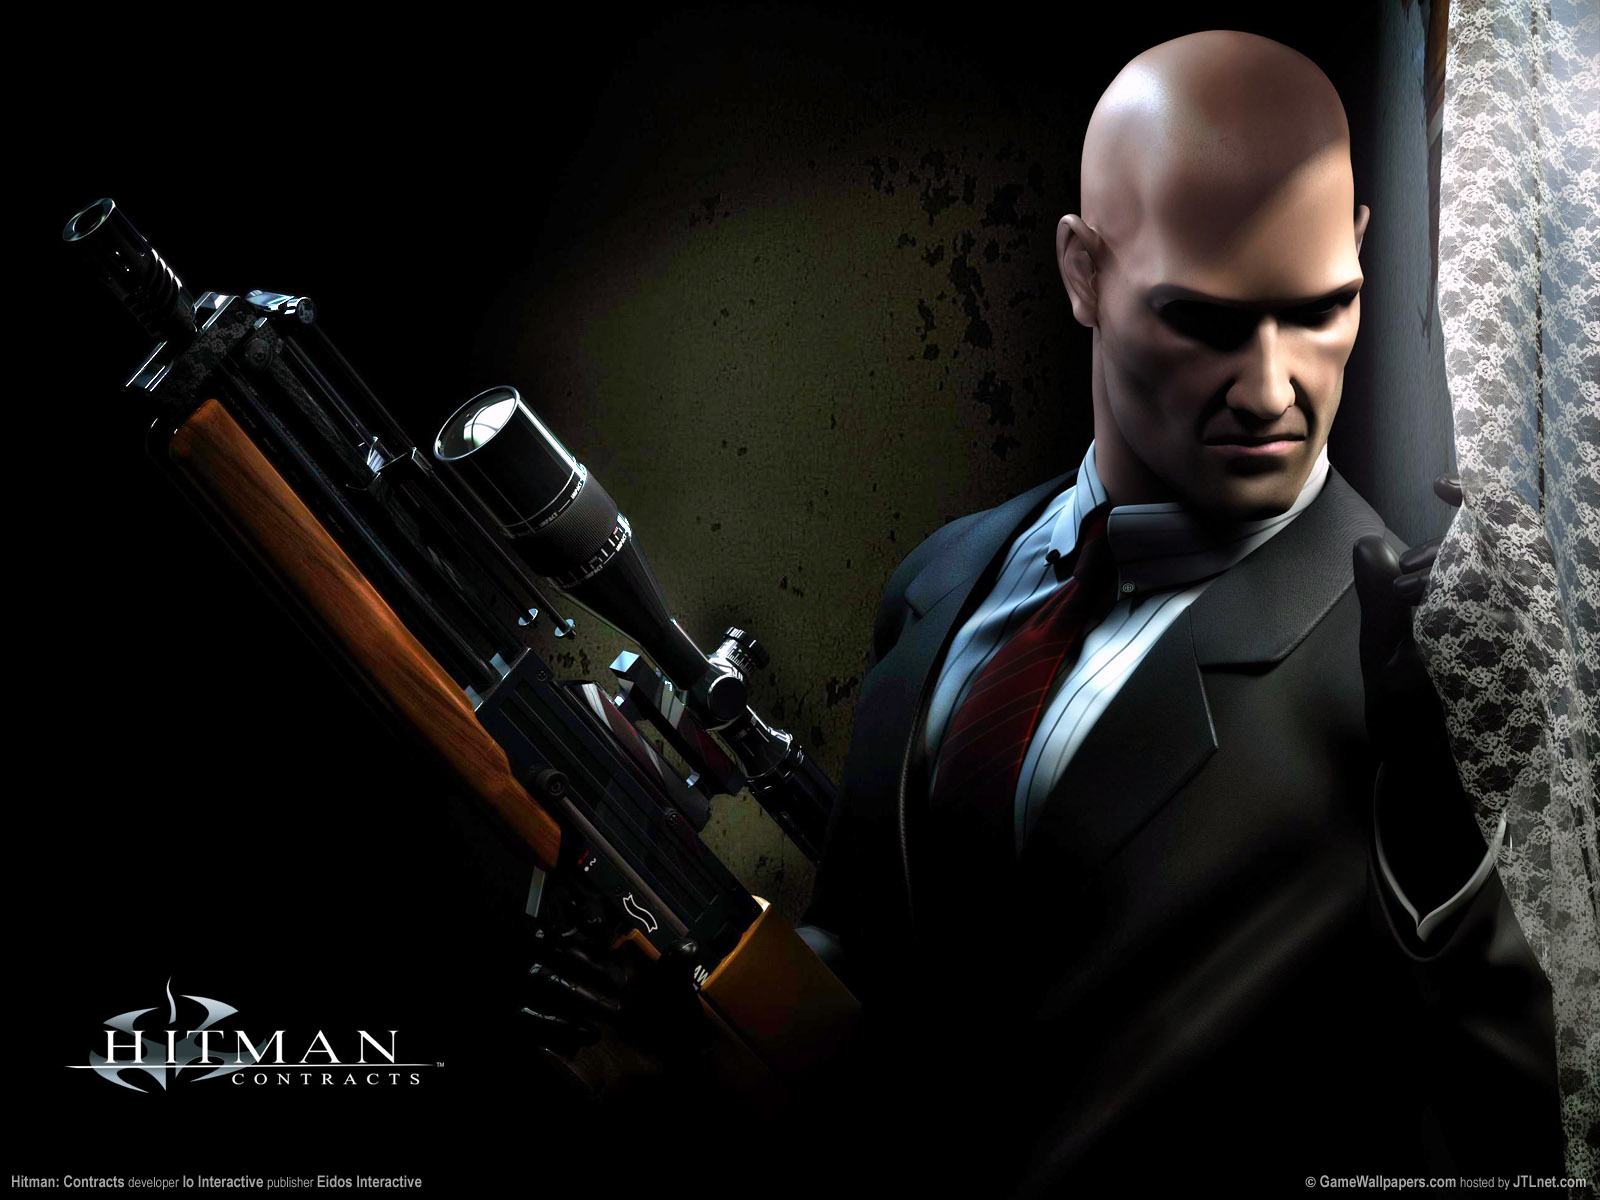 wallpaper_hitman_contracts_04_1600.jpg